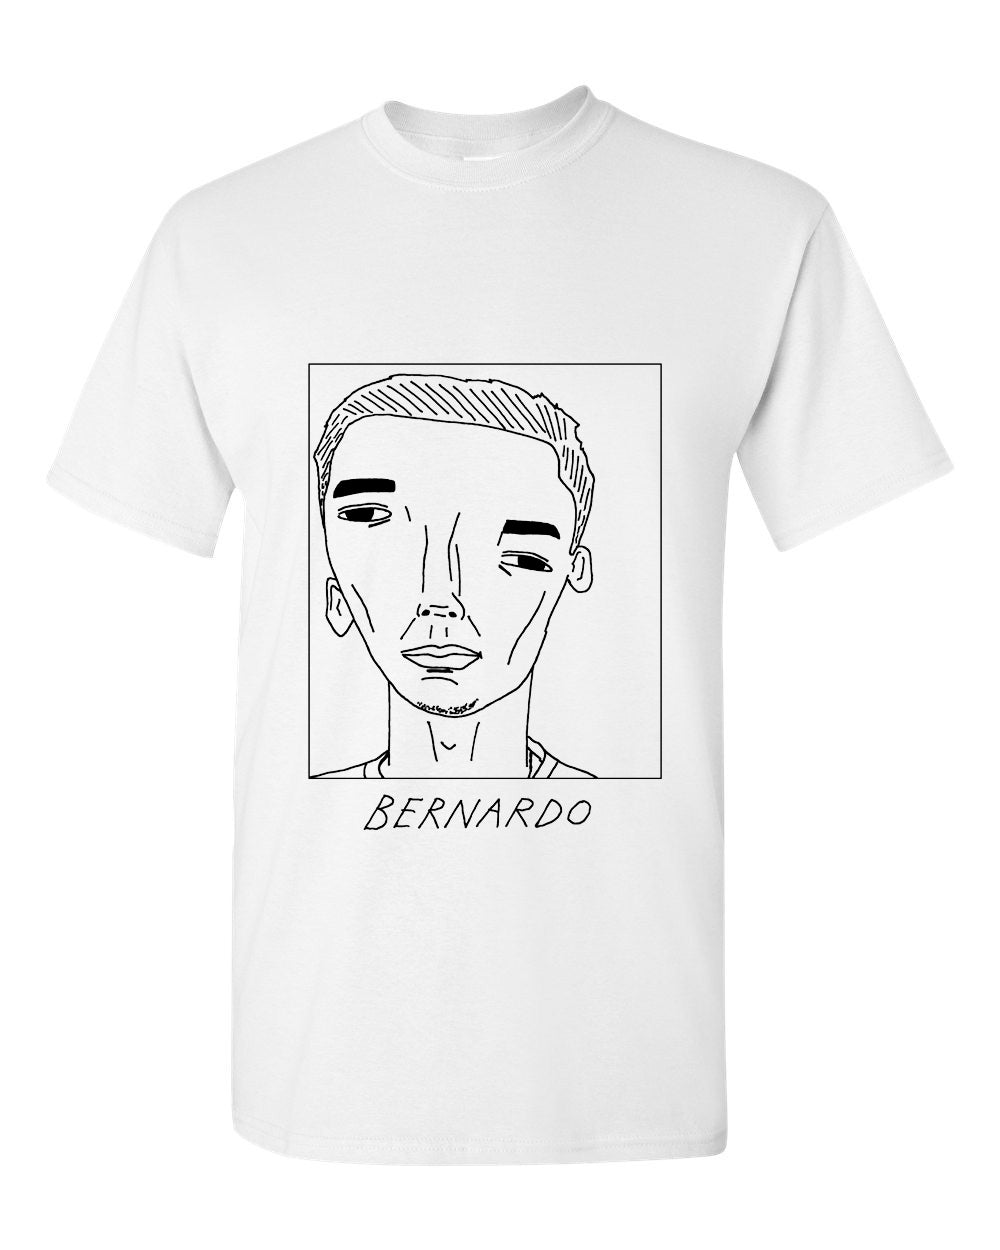 Badly Drawn Bernardo T-shirt - Brighton & Hove Albion F.C.